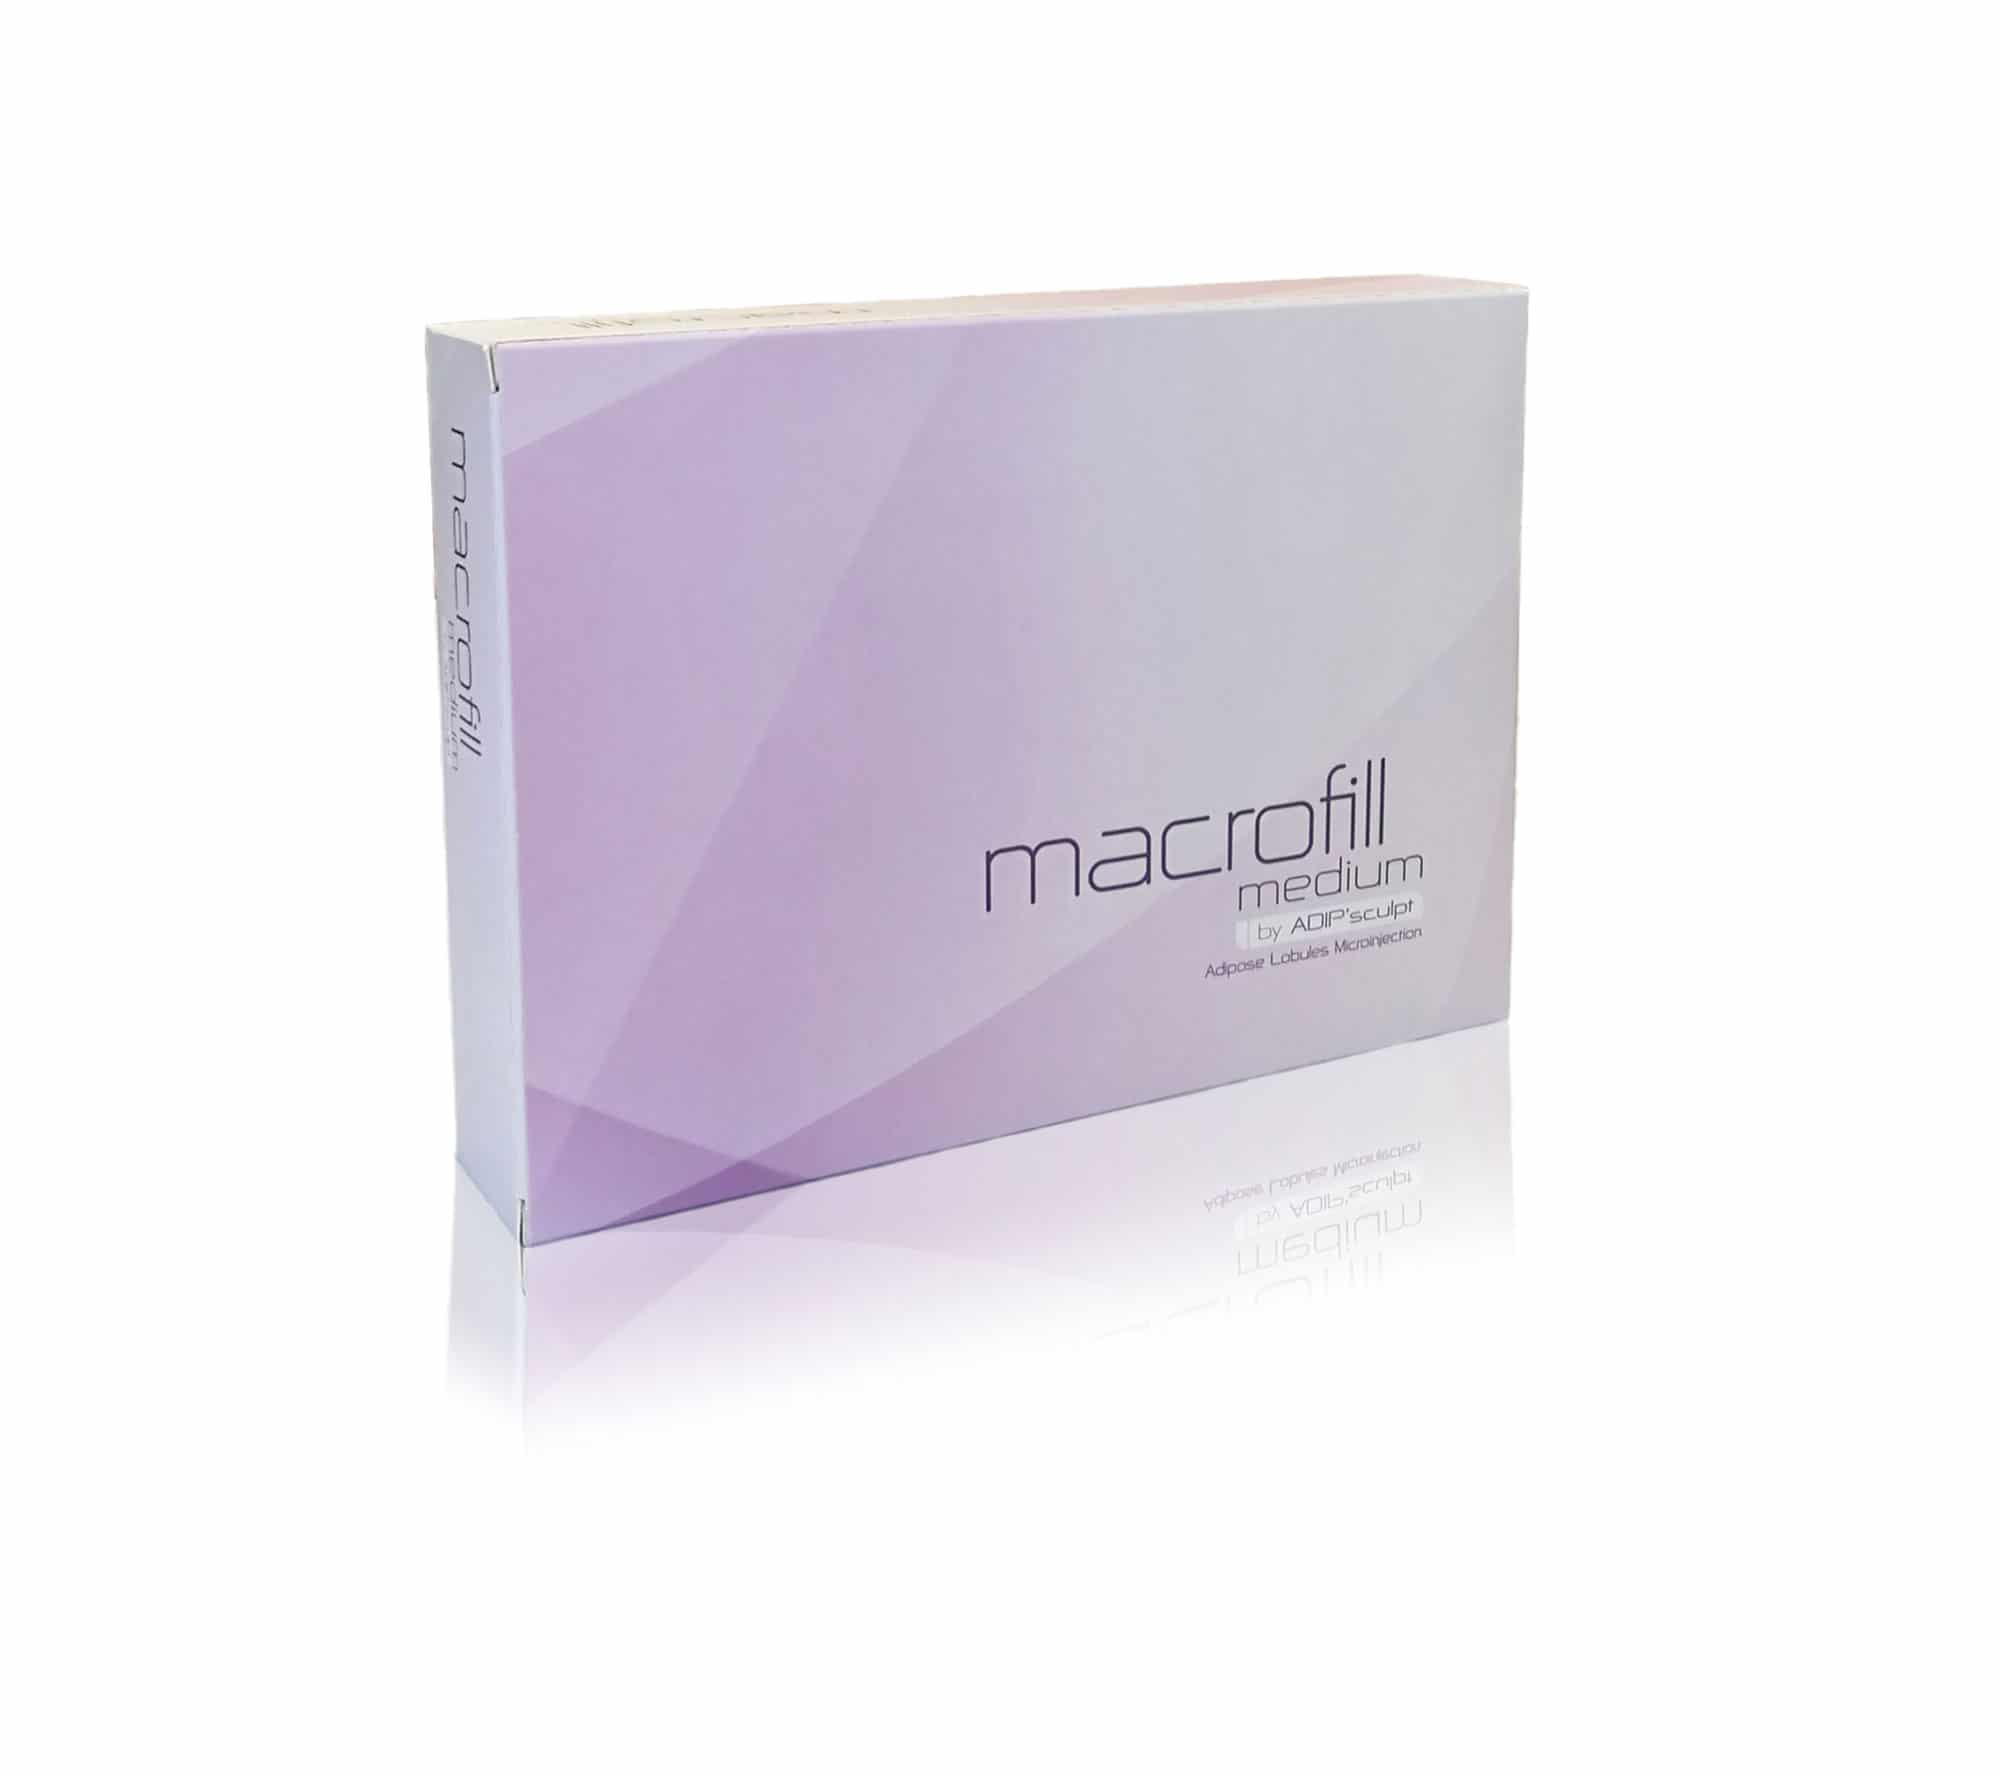 macrofill medium lipofilling lipomodeling fat grafting adipsculpt leader efficient